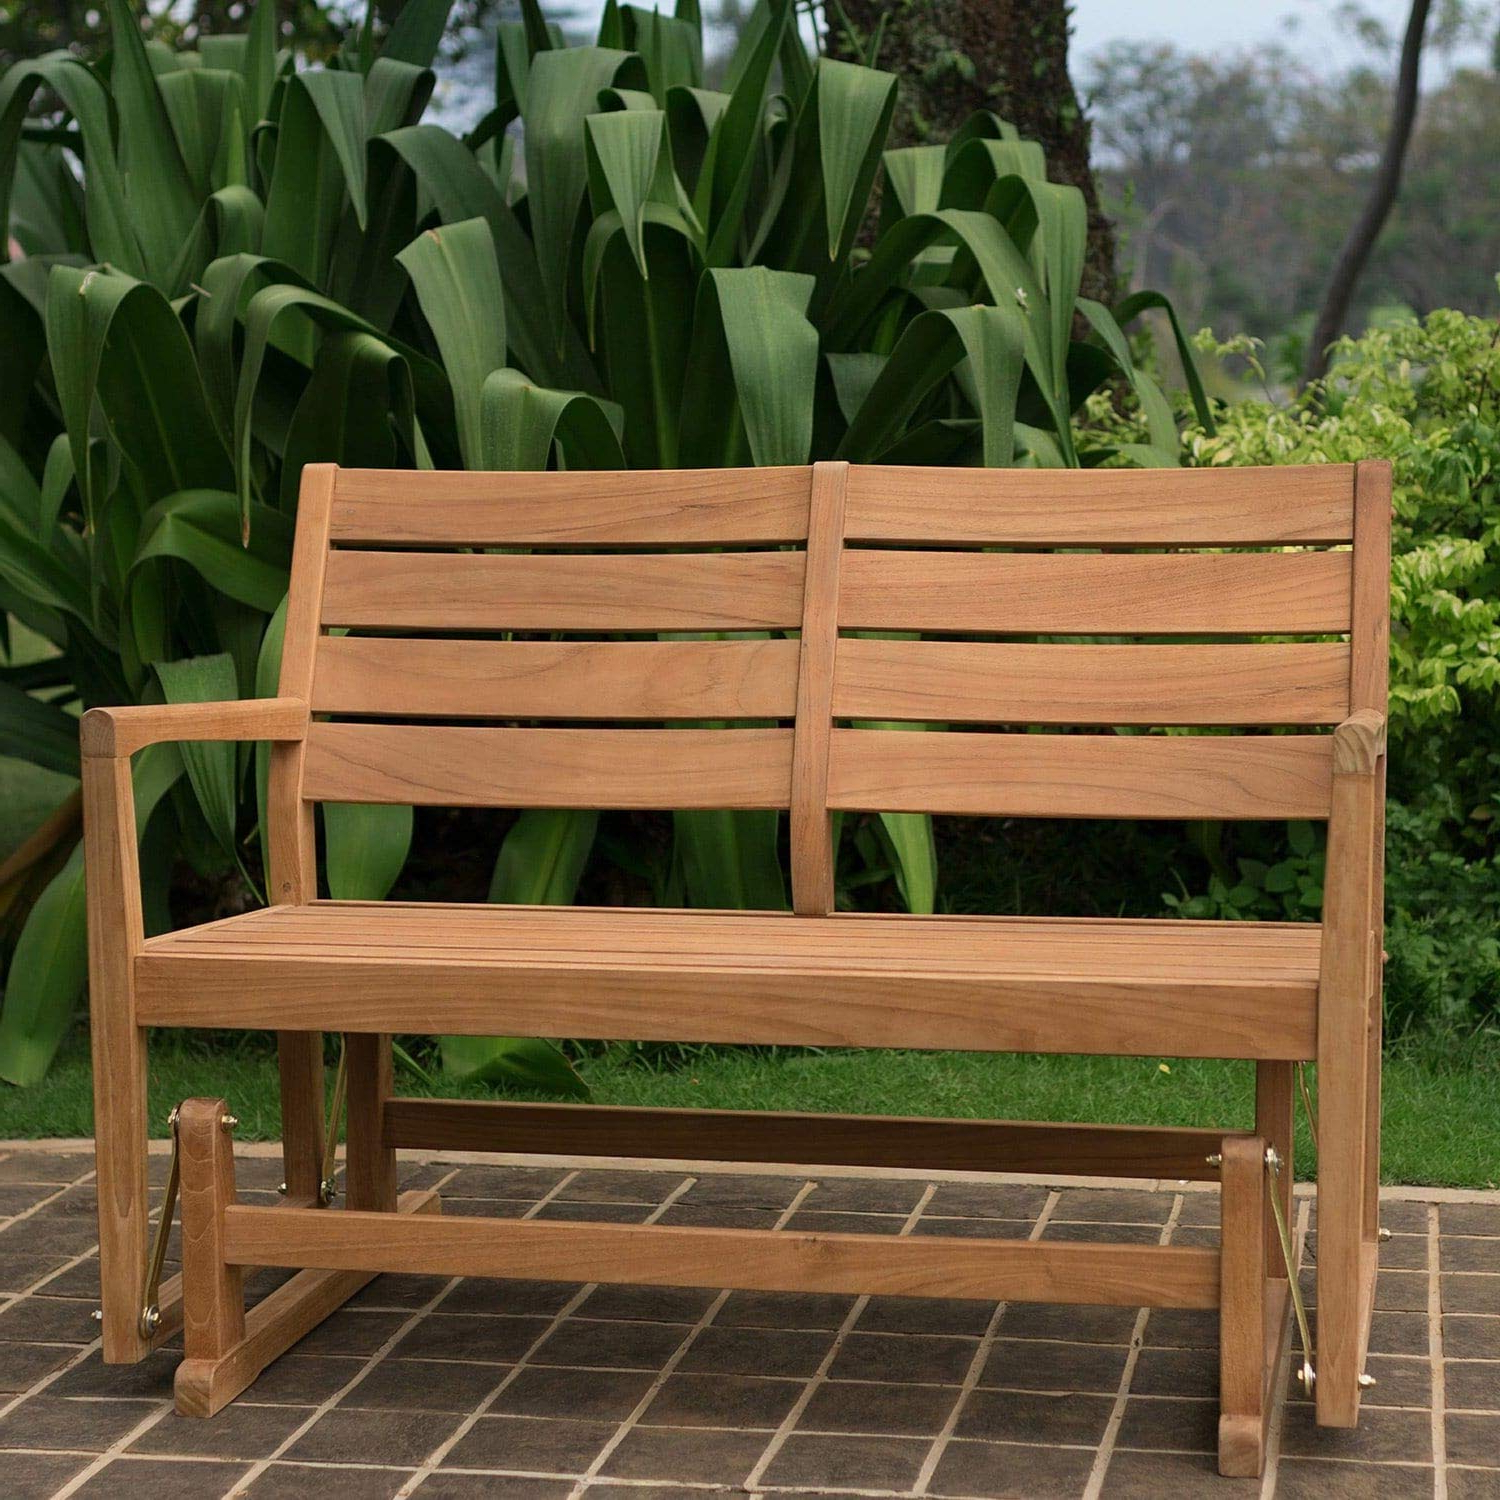 Amazon : Cambridge Casual Andrea Teak Glider Bench Pertaining To Famous Teak Outdoor Glider Benches (View 5 of 30)